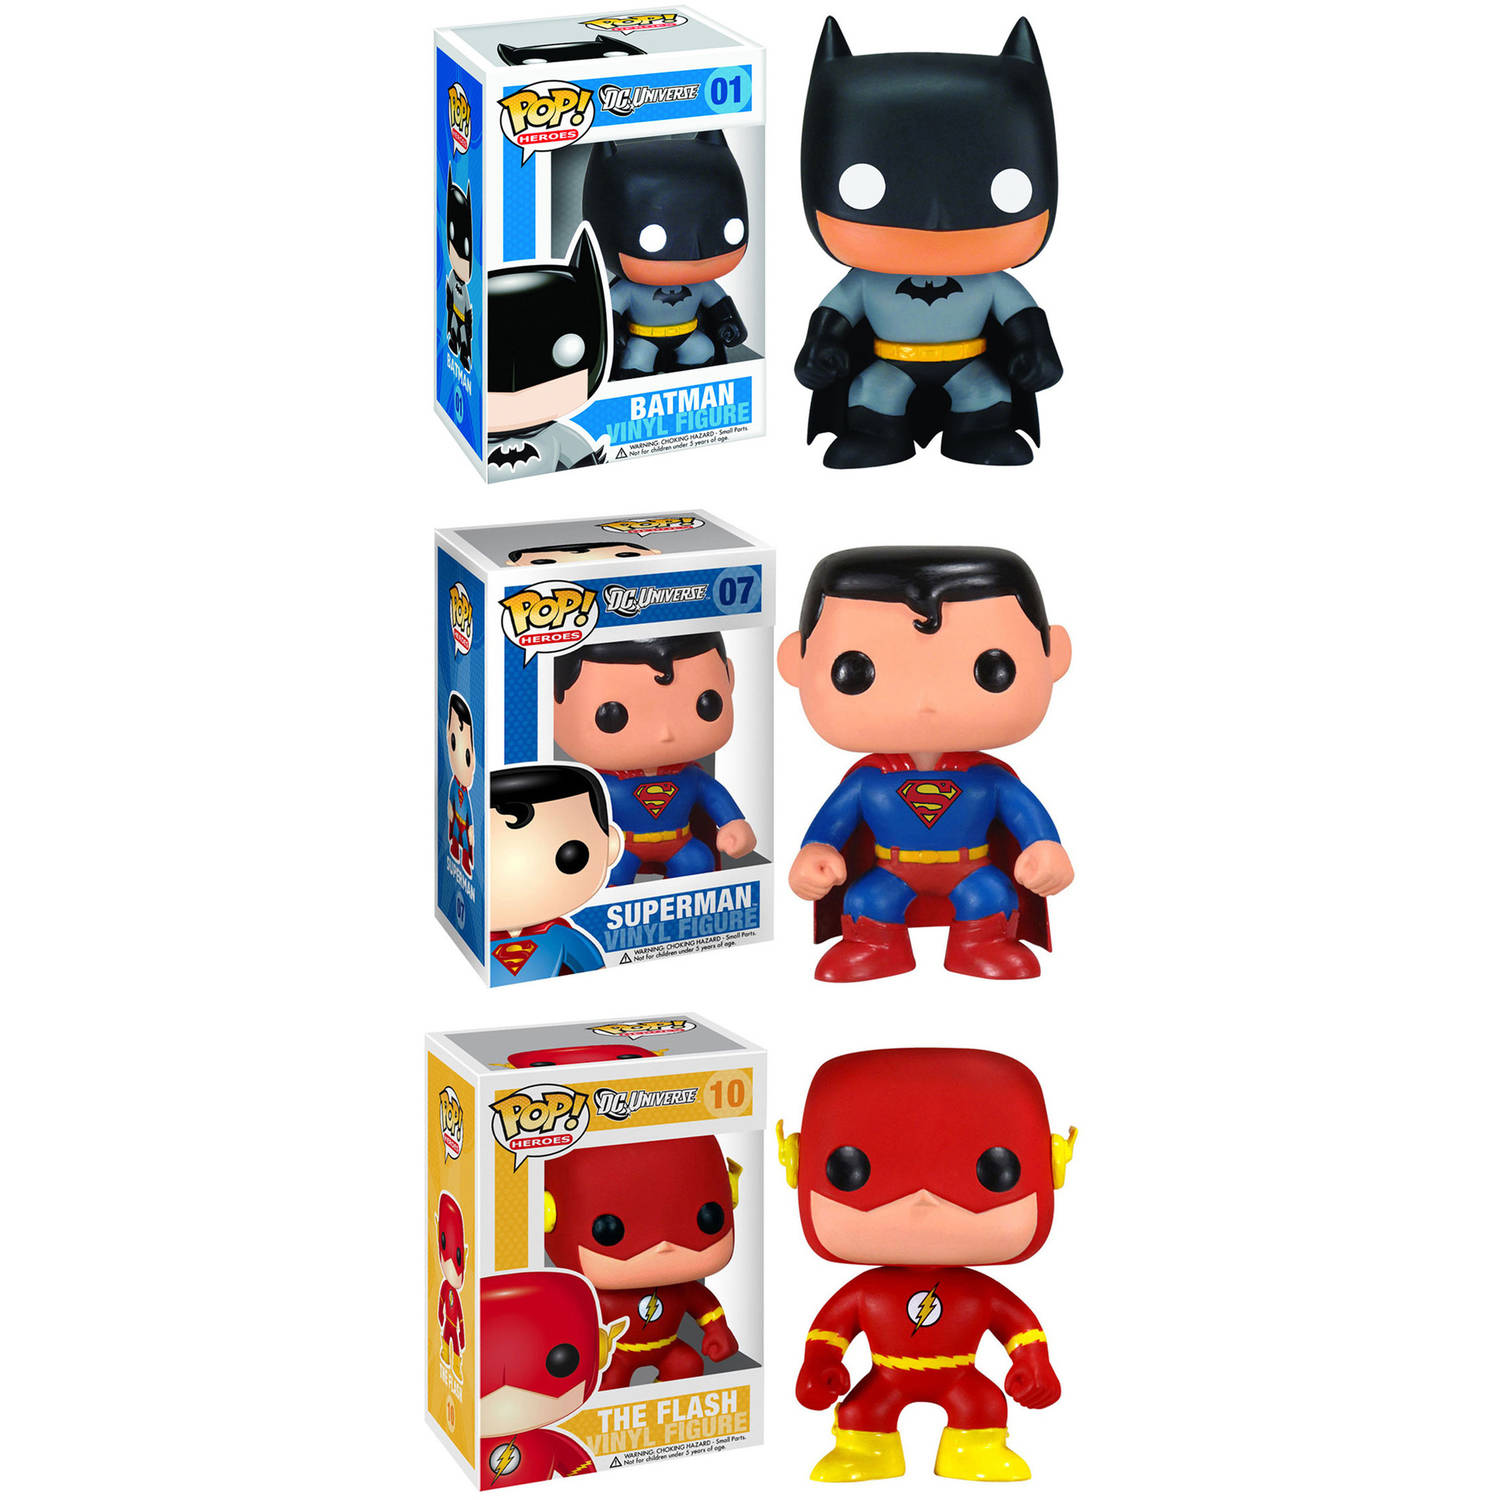 Funko DC Universe POP! Heroes Vinyl Collectors Set: Batman, Superman and Flash